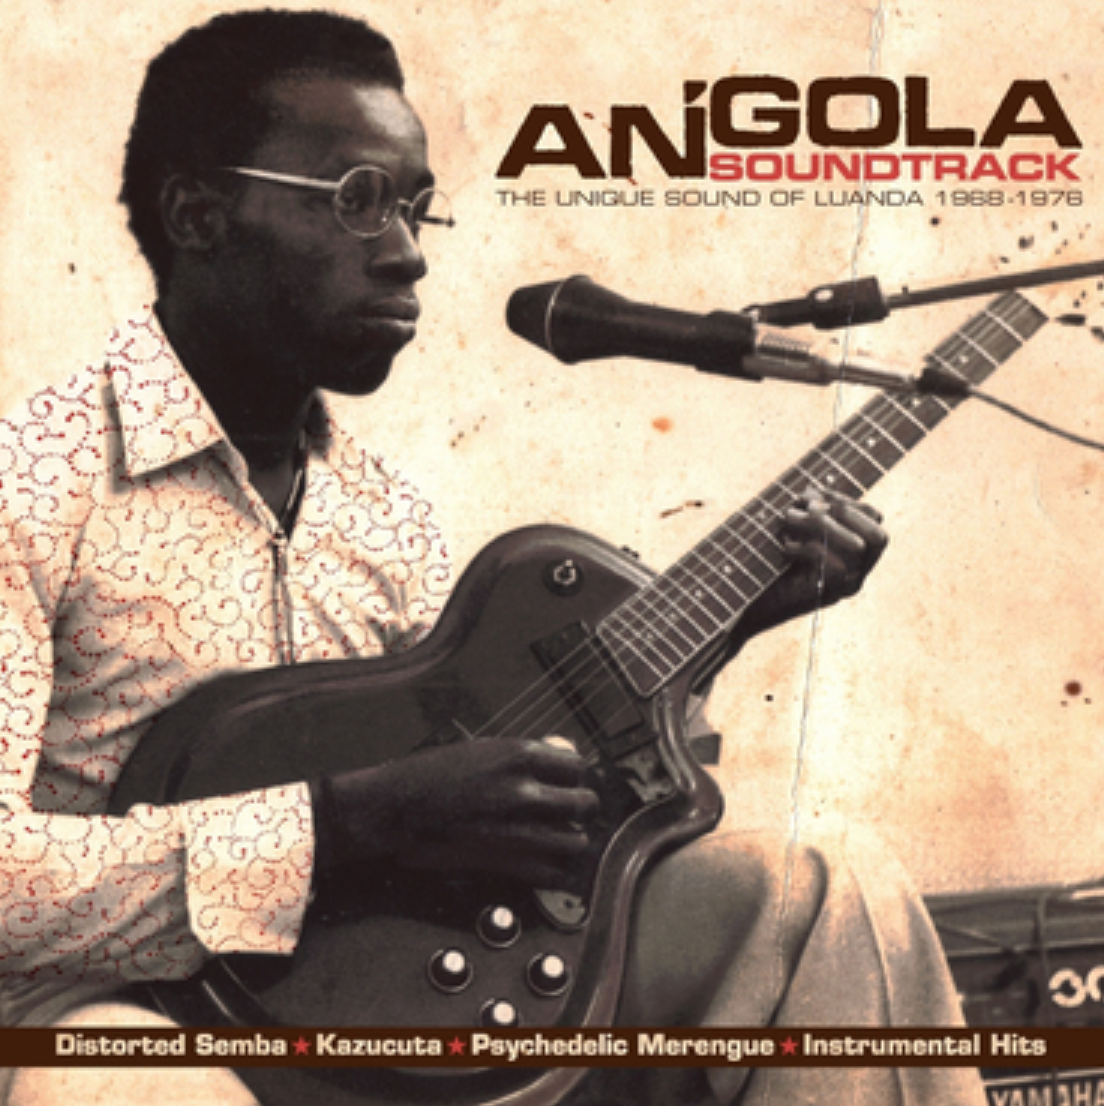 Analog Africa Various - Angola Soundtrack  The Unique Sound Of Luanda 1968 - 1976